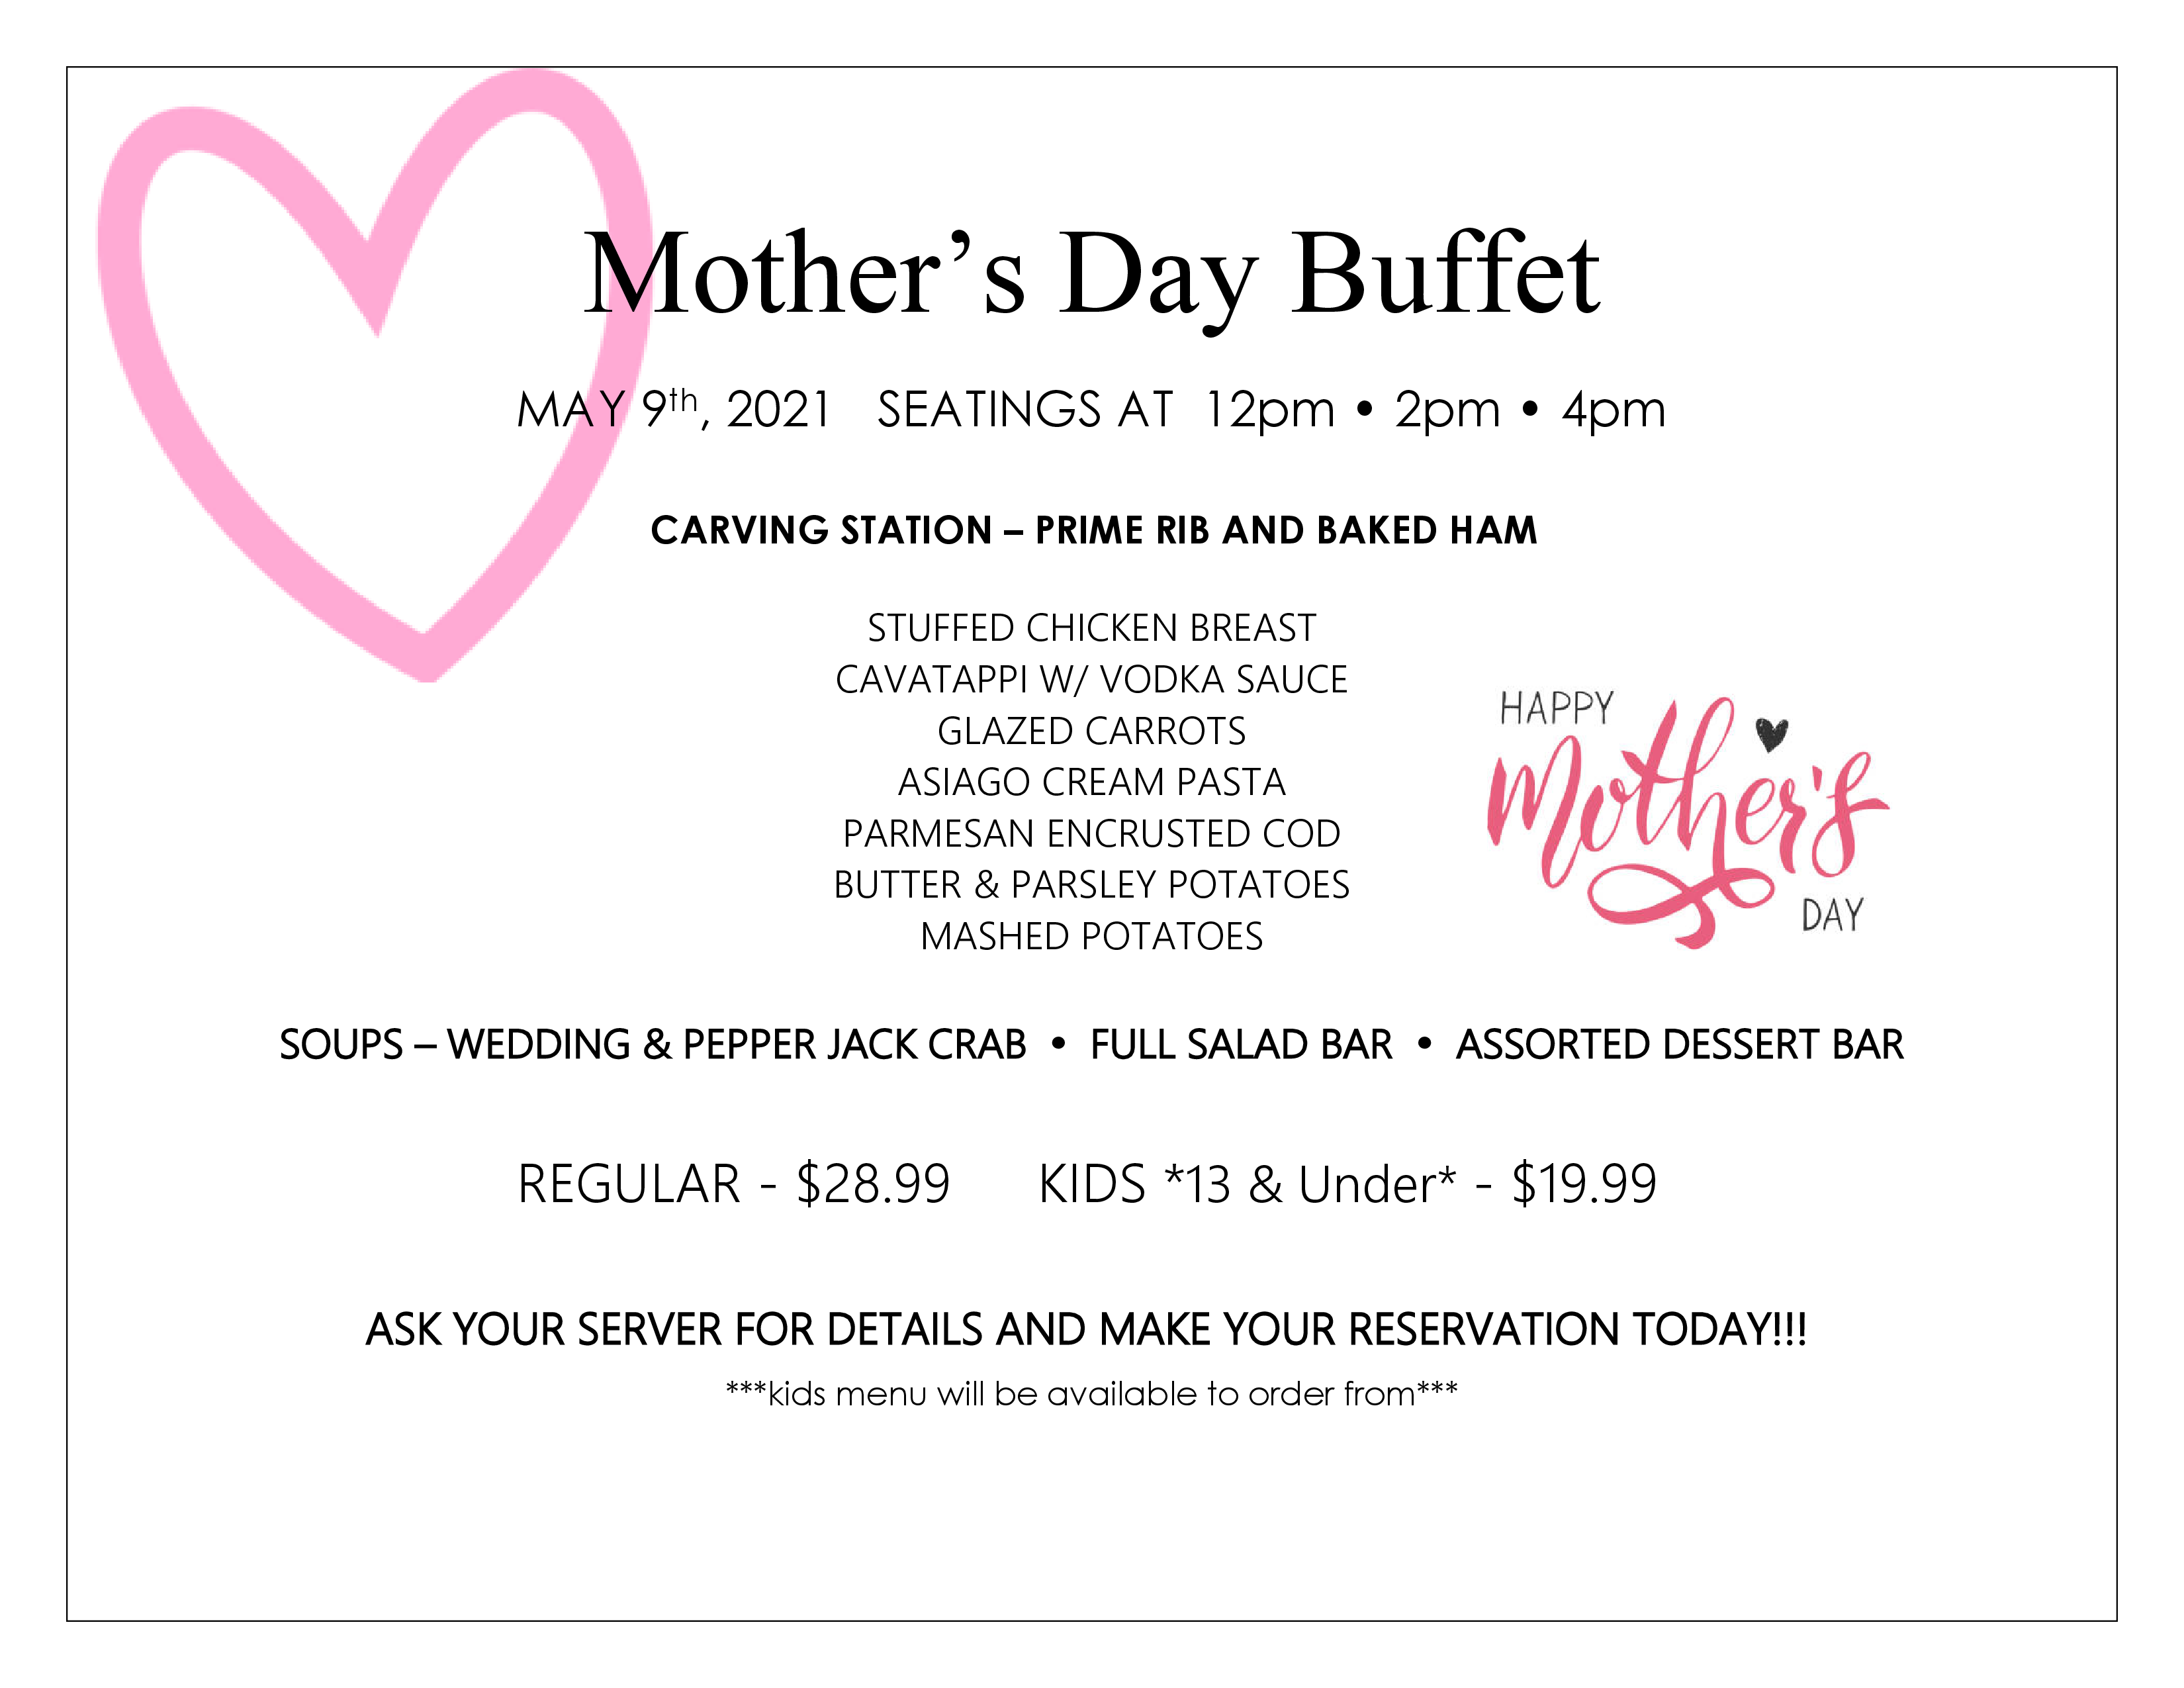 Mother's Day Buffet - MAY 9th, 2021. Seatings at 12pm, 2pm, 4pm. CARVING STATION – PRIME RIB AND BAKED HAM, STUFFED CHICKEN BREAST CAVATAPPI W/ VODKA SAUCE, GLAZED CARROTS, ASIAGO CREAM PASTA, PARMESAN ENCRUSTED COD, BUTTER & PARSLEY POTATOES, MASHED POTATOES. SOUPS – WEDDING & PEPPER JACK CRAB. FULL SALAD BAR. ASSORTED DESSERT BAR. REGULAR - $28.99. KIDS *13 & Under* - $19.99. ASK YOUR SERVER FOR DETAILS AND MAKE YOUR RESERVATION TODAY!!! Kids menu will be available to order from.